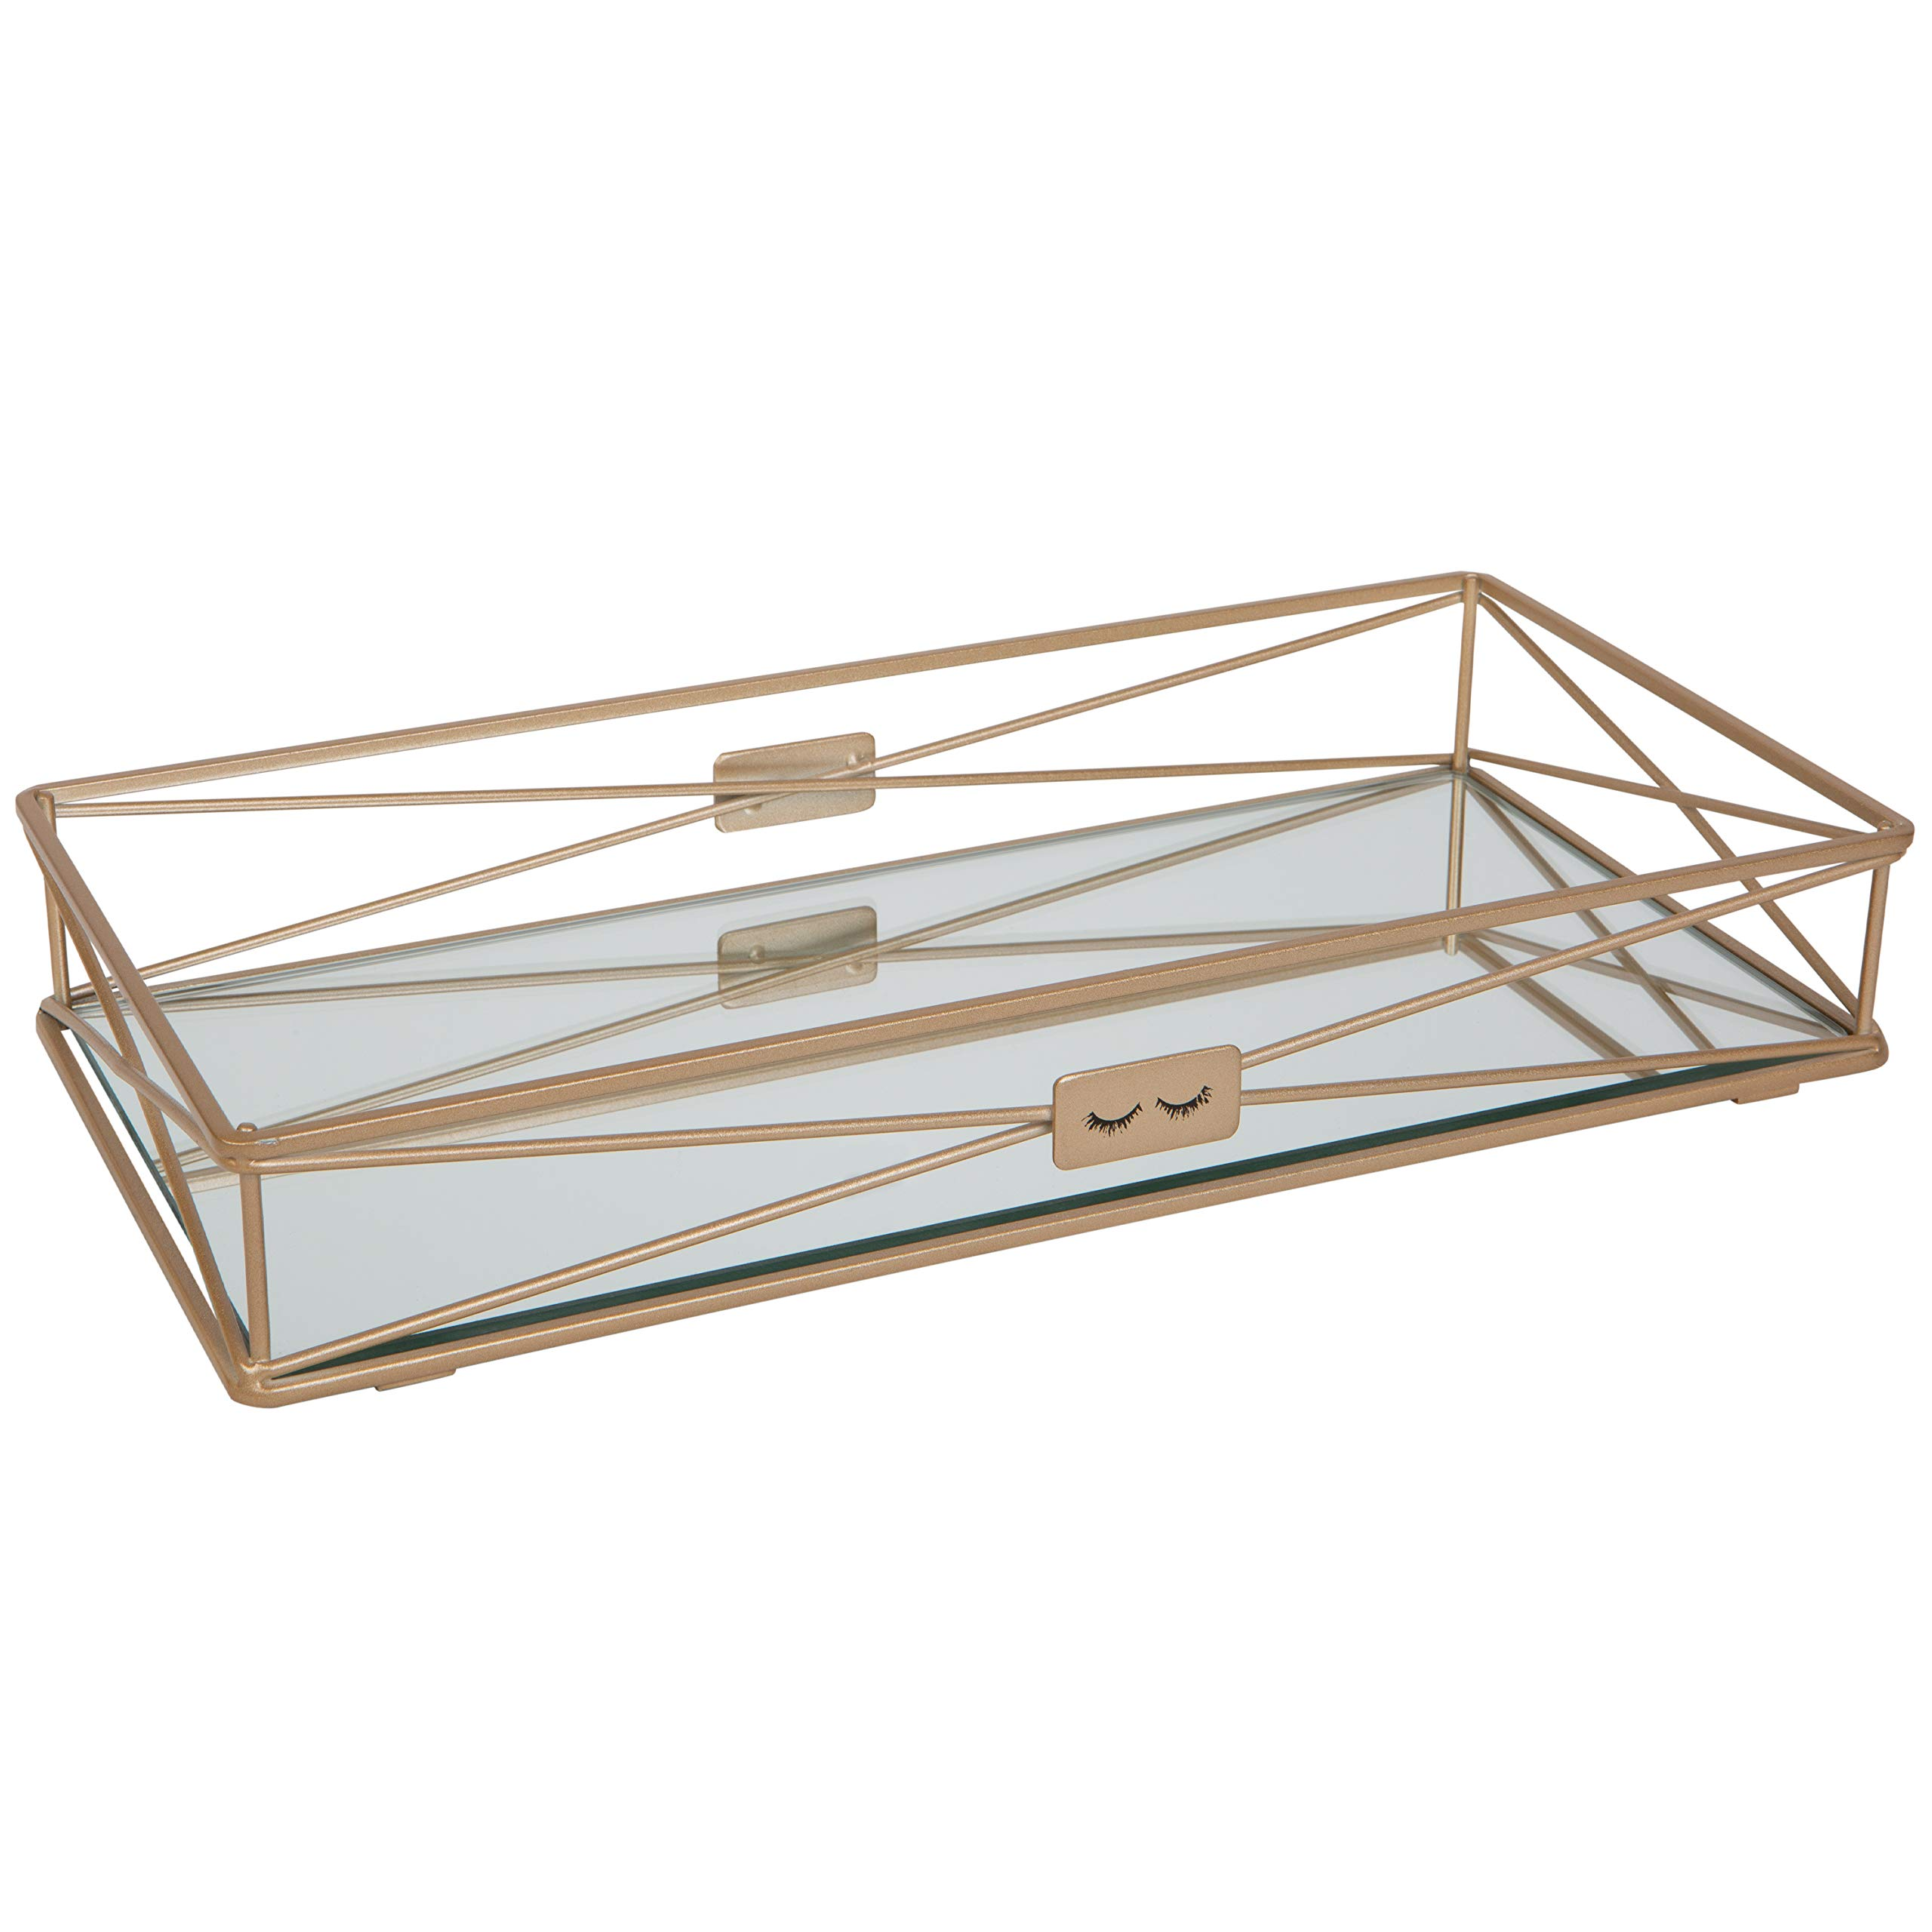 Home Details Gorgeous Vanity Tray in Satin Gold, 1 Tier,